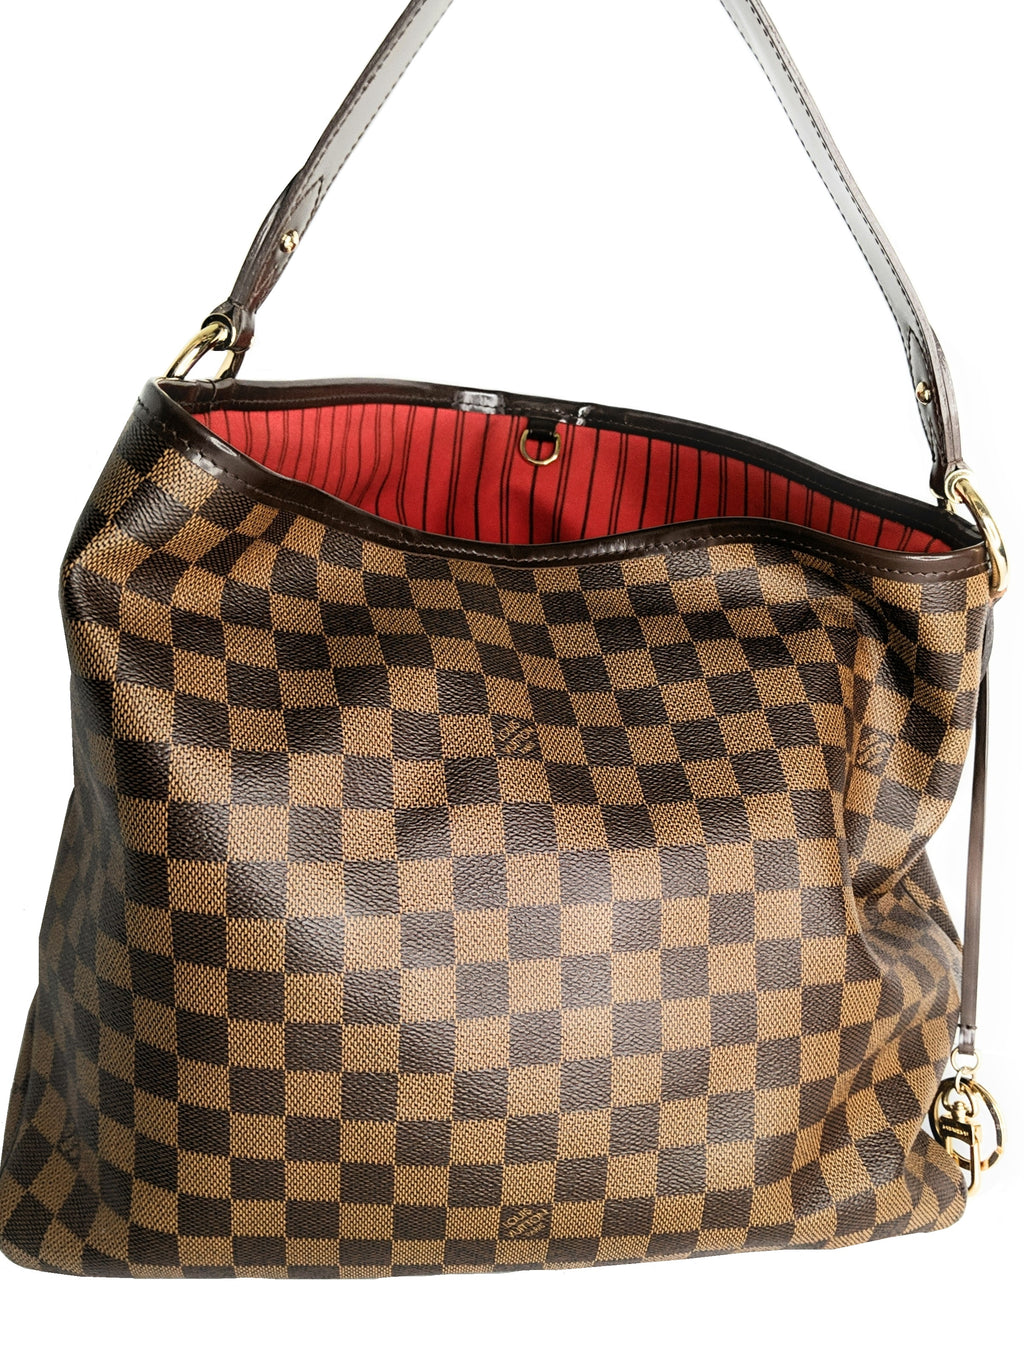 Louis Vuitton Damier Ebene Delightful Hobo PM